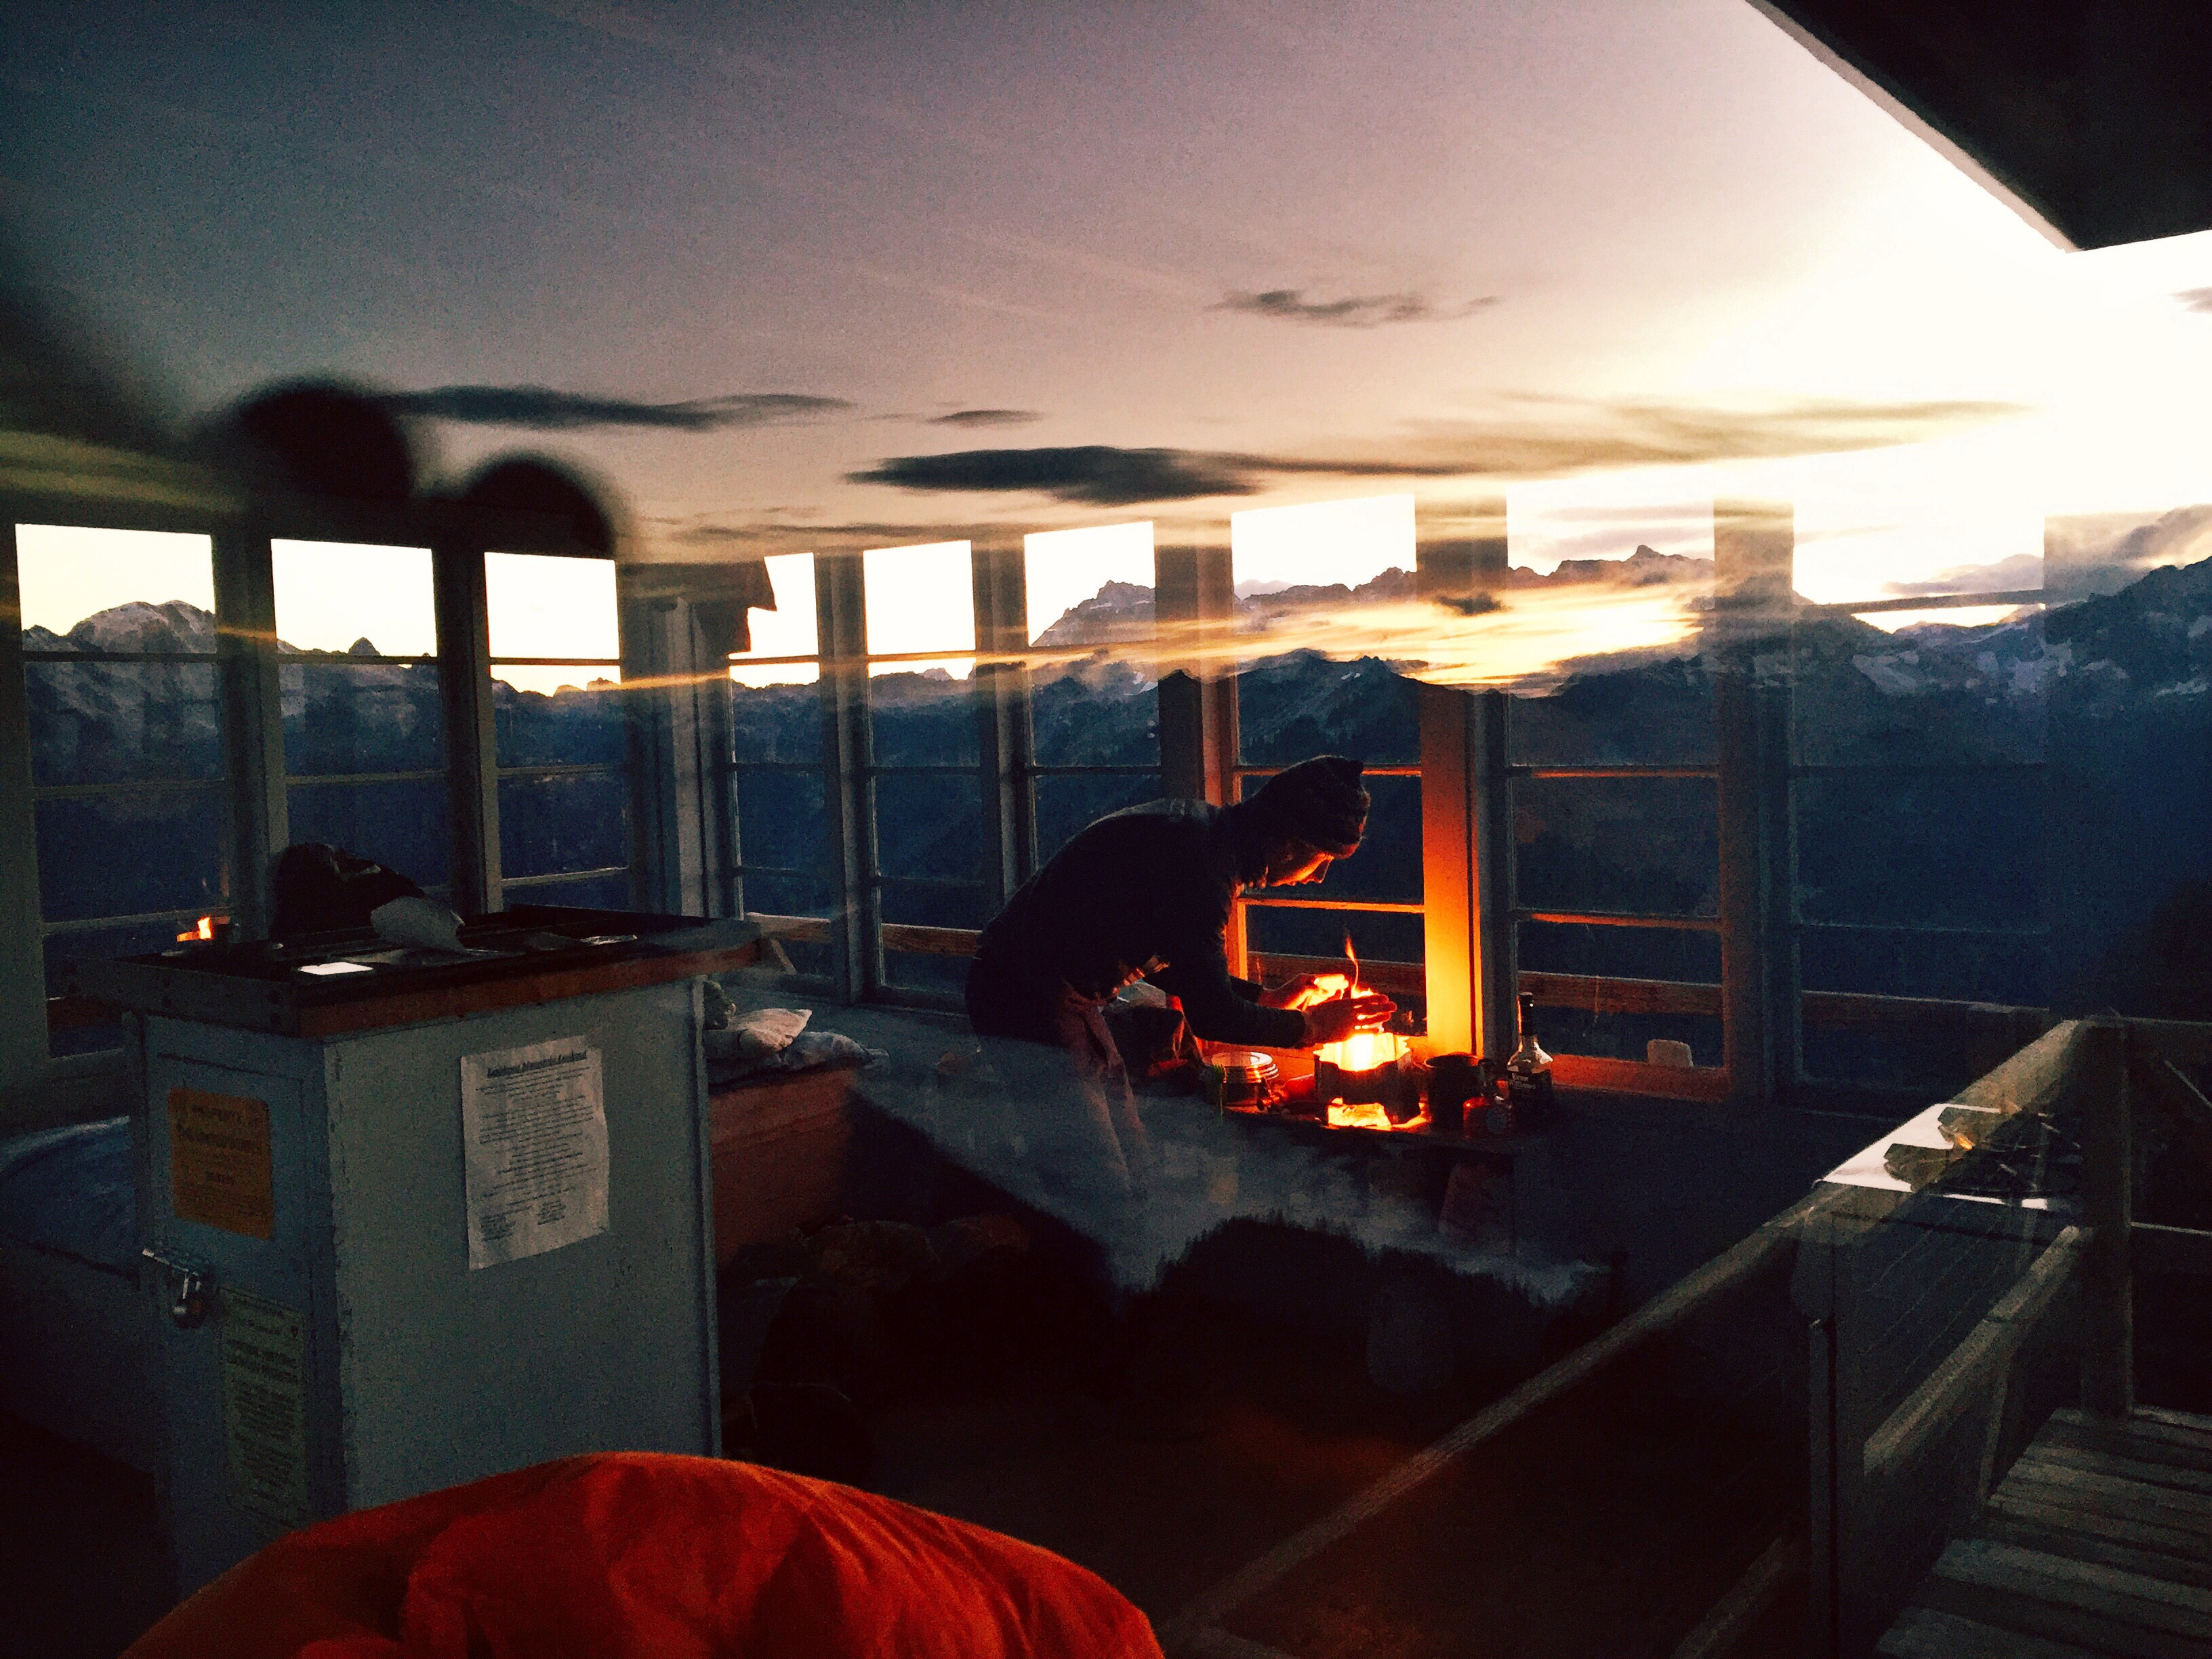 Sunrise at Lookout Mountain Lookout by Gabby Kapa